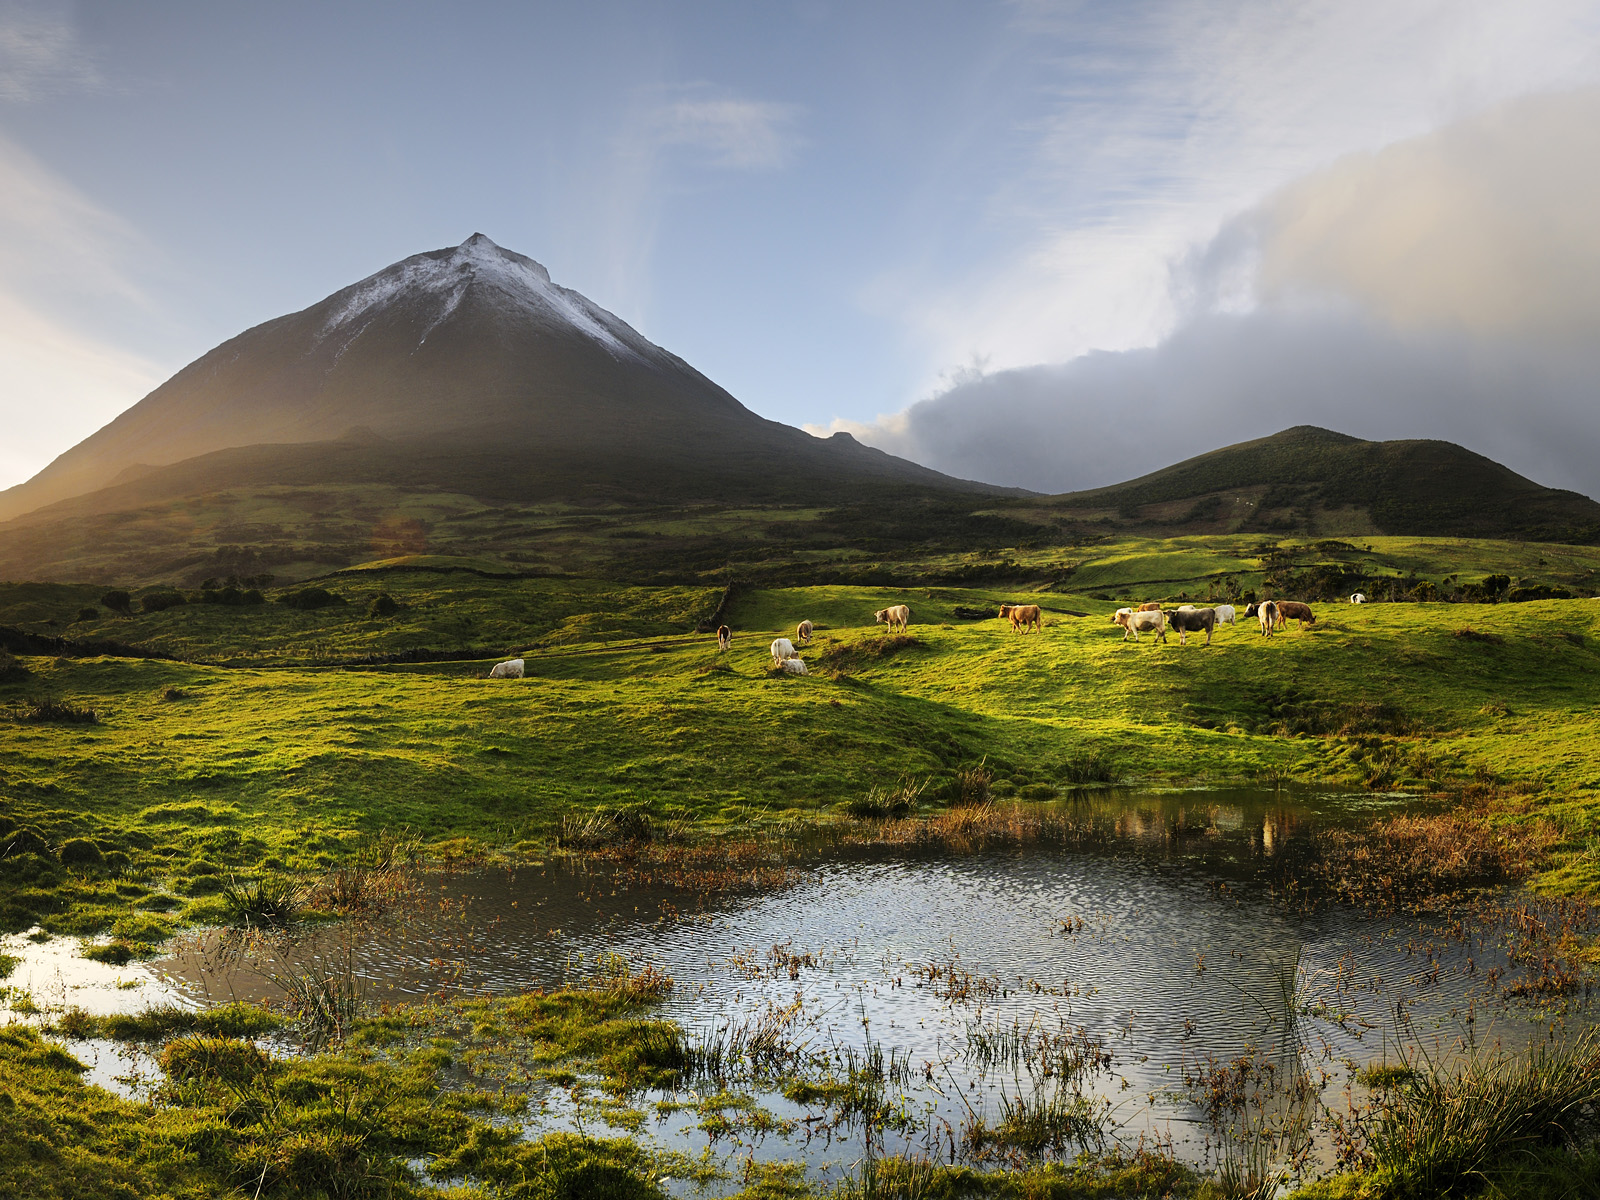 Azores Portugal --- The volcano, 2351 meters high, at the Pico island. His last eruption was in 1720. Azores islands, Portugal --- Image by © Mauricio Abreu/JAI/Corbis